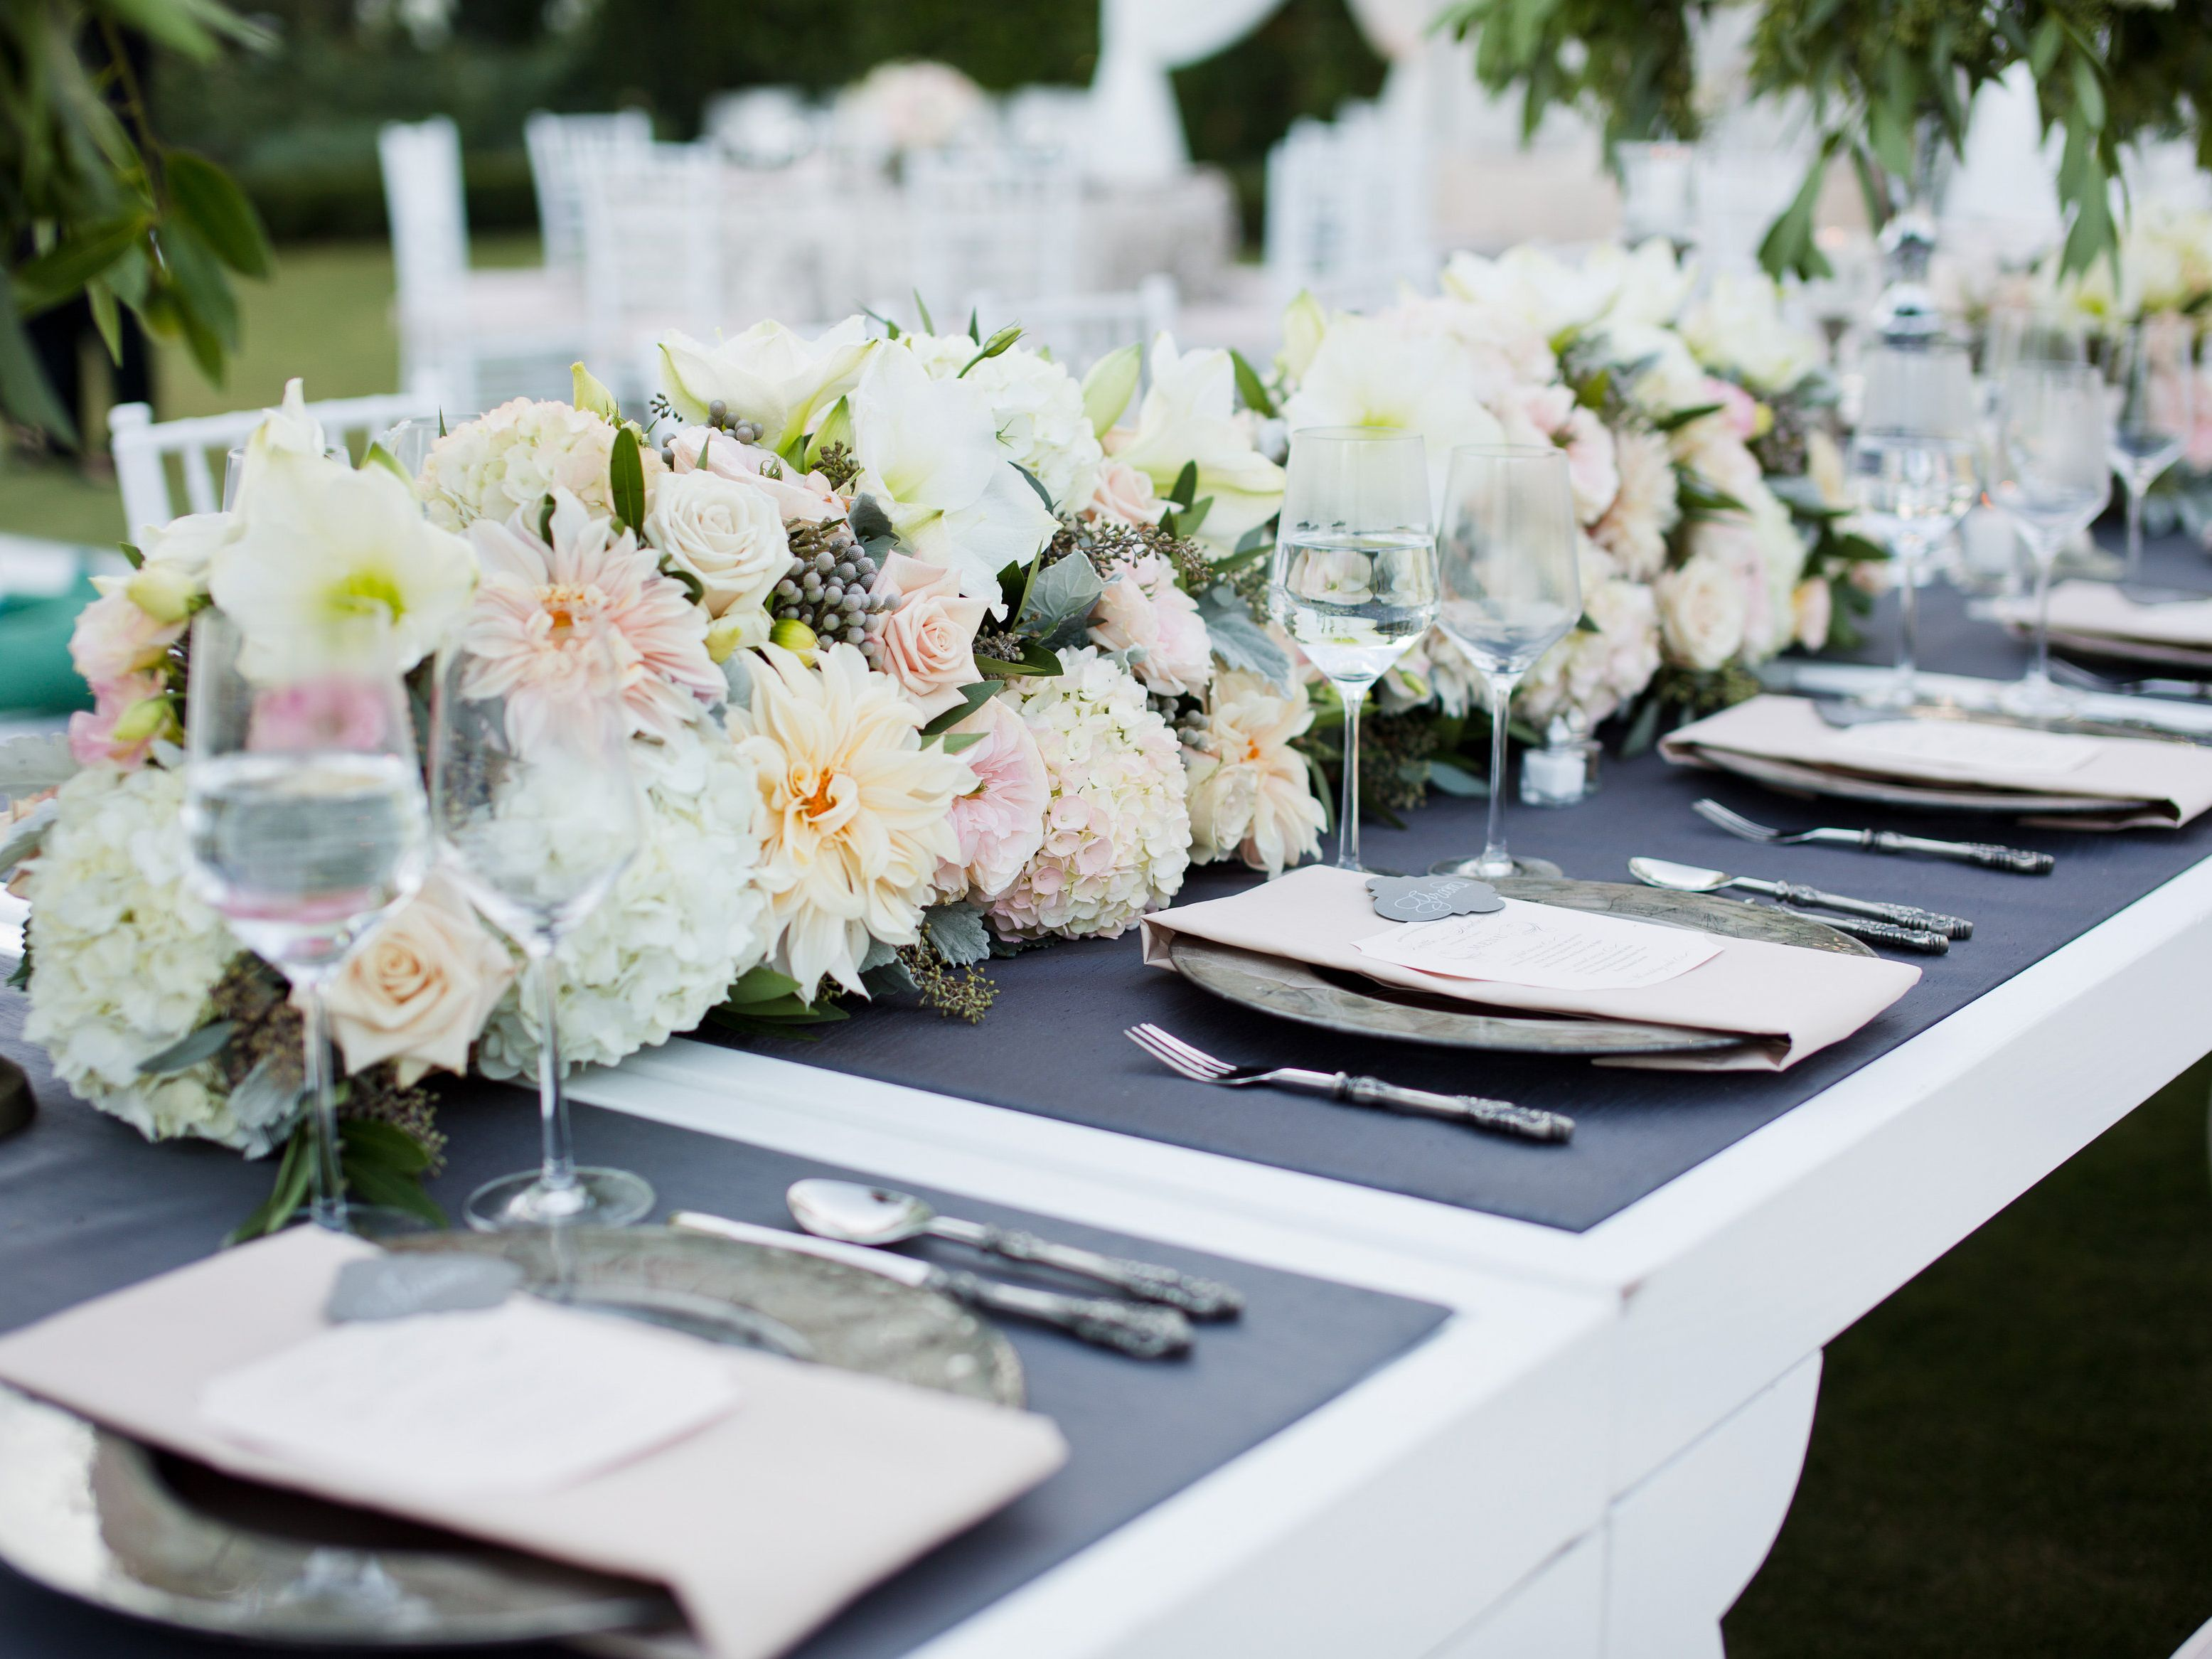 What Tables Do You Need At A Wedding: What Type Of Wedding Planner Do You Need?